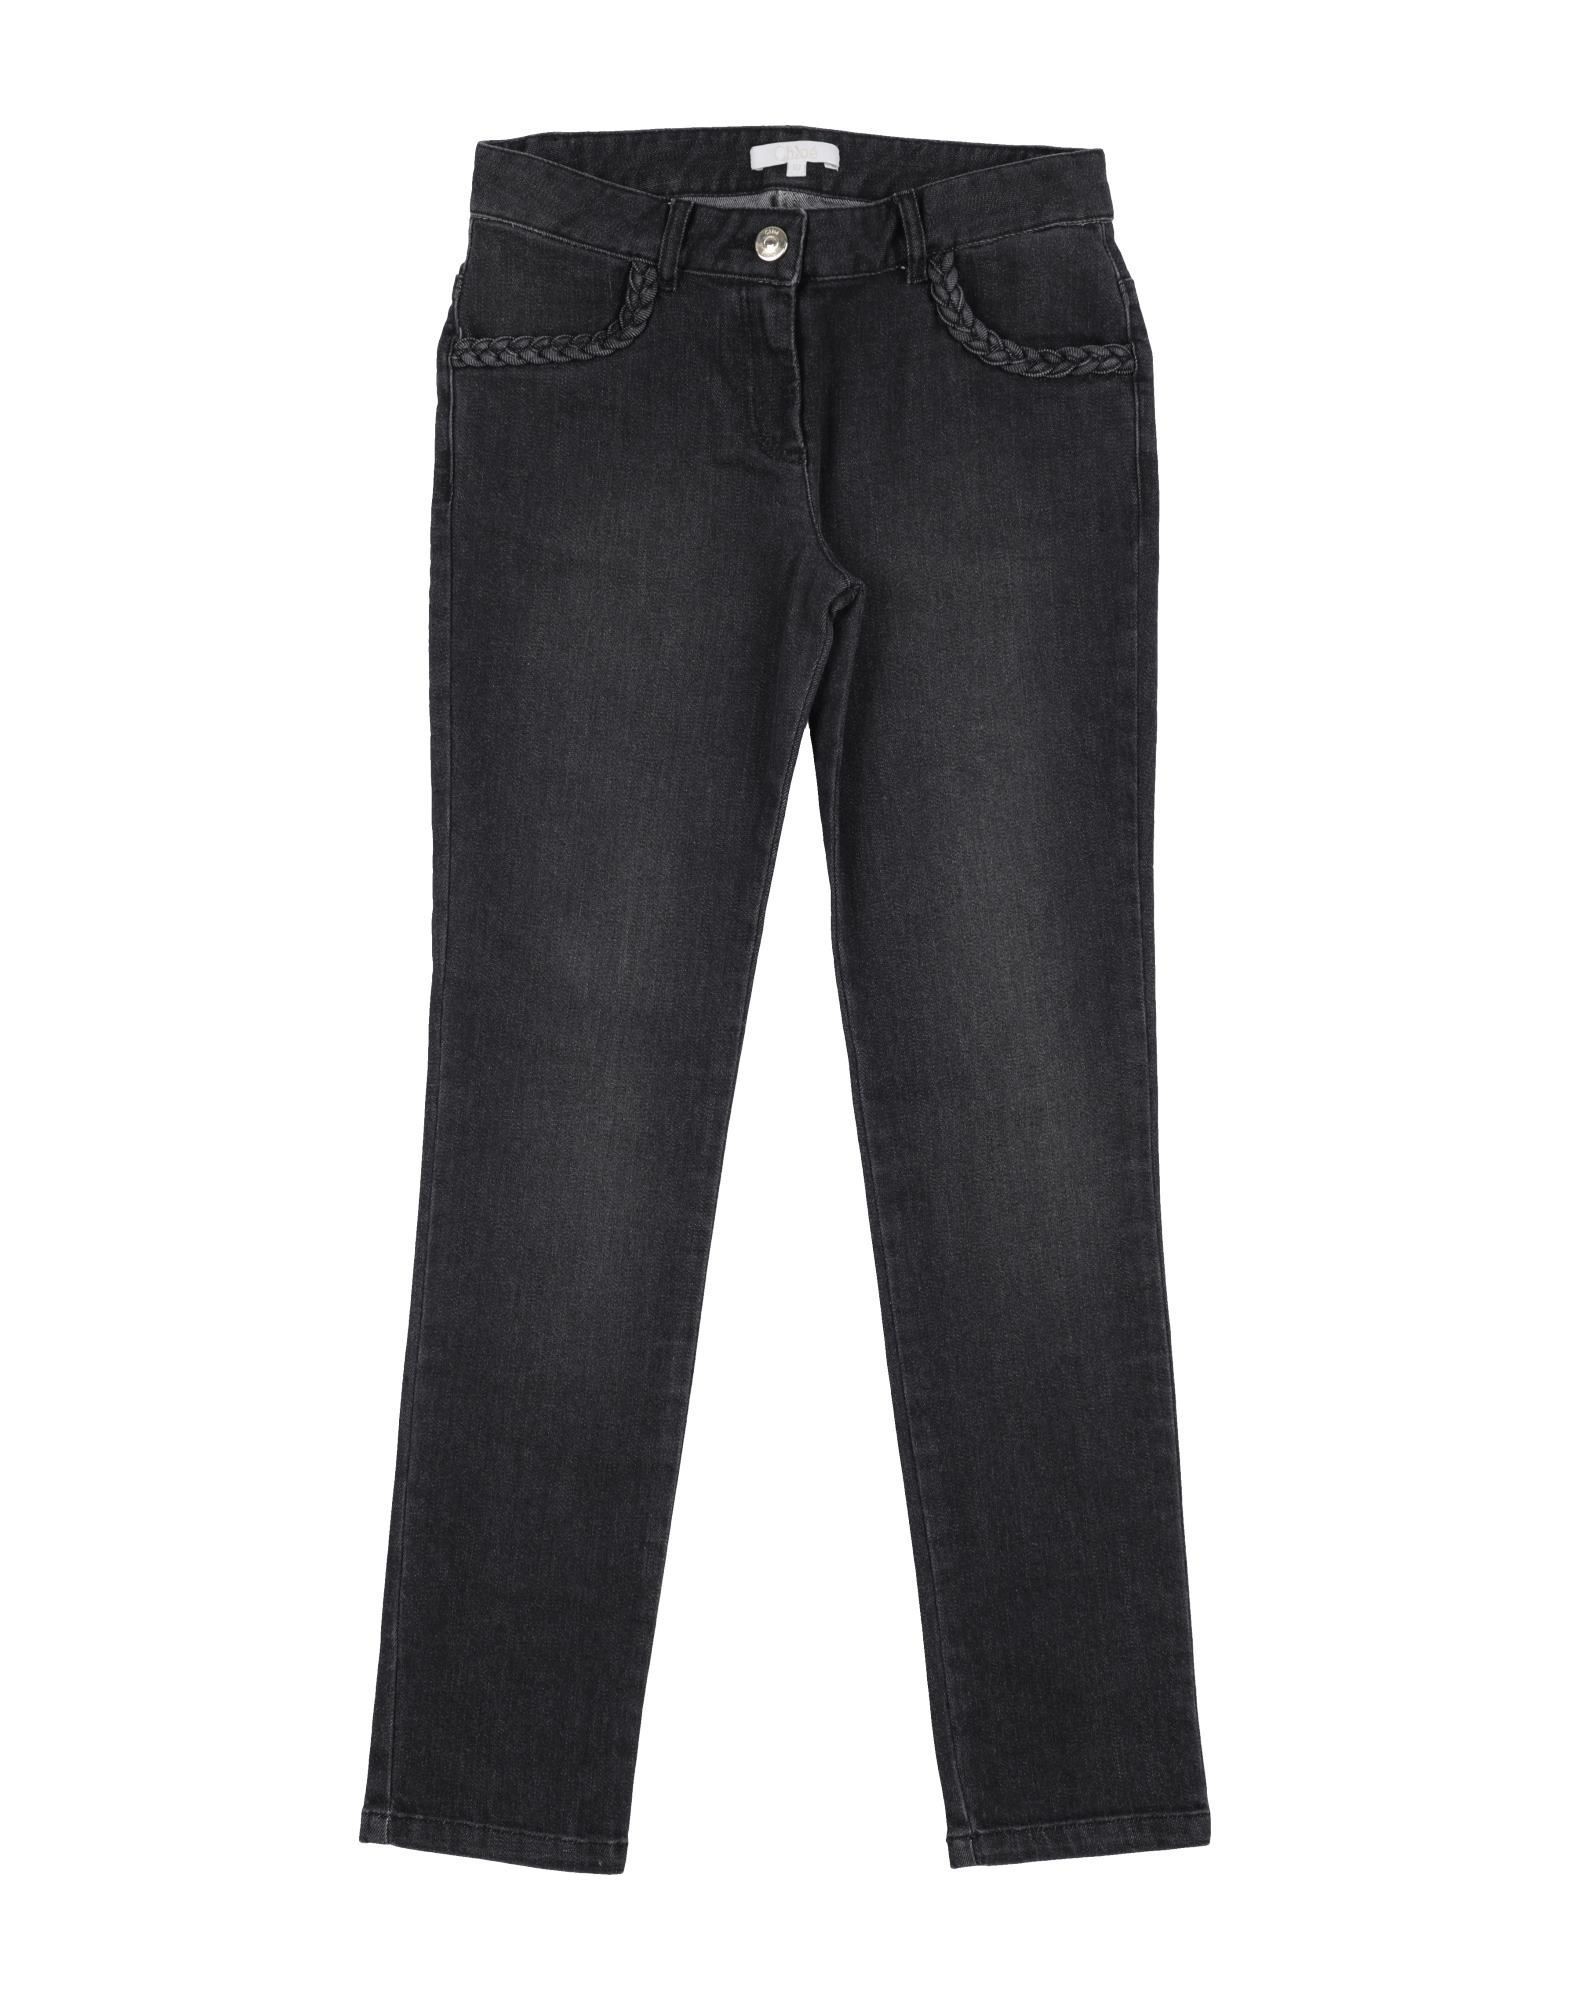 CHLOÉ | CHLOÉ Denim Pants 42740088 | Goxip